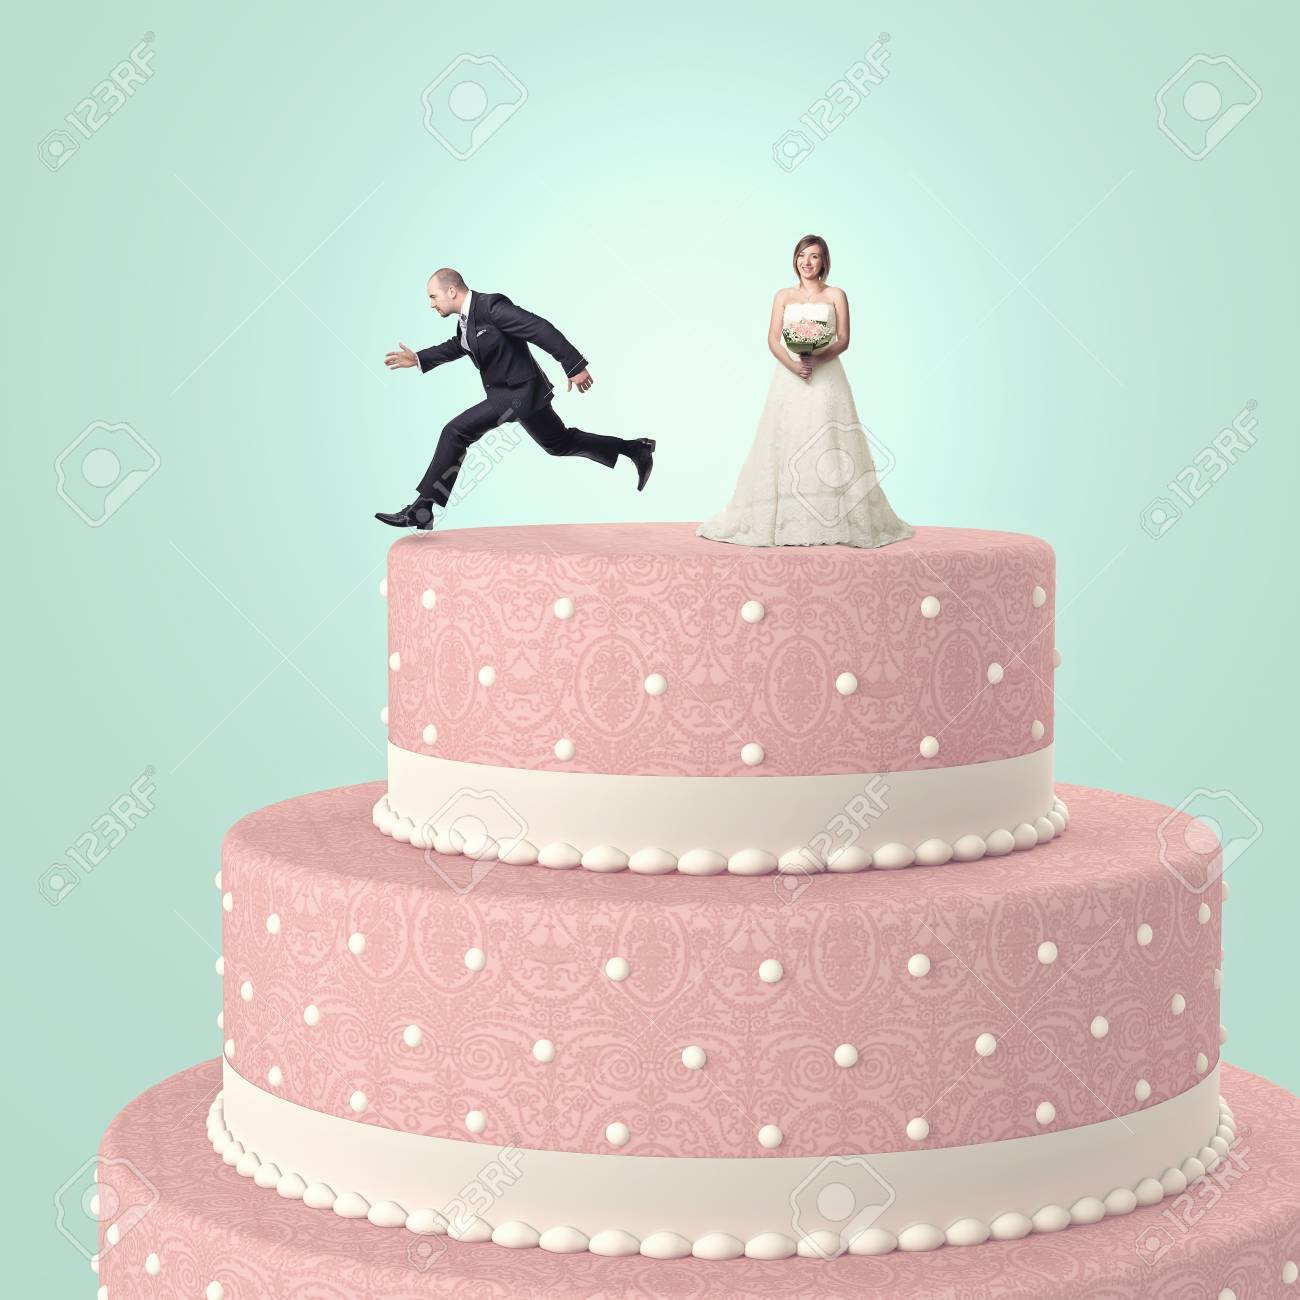 Funny wedding cake with goom and bride stock photo picture and funny wedding cake with goom and bride stock photo 20680642 junglespirit Images